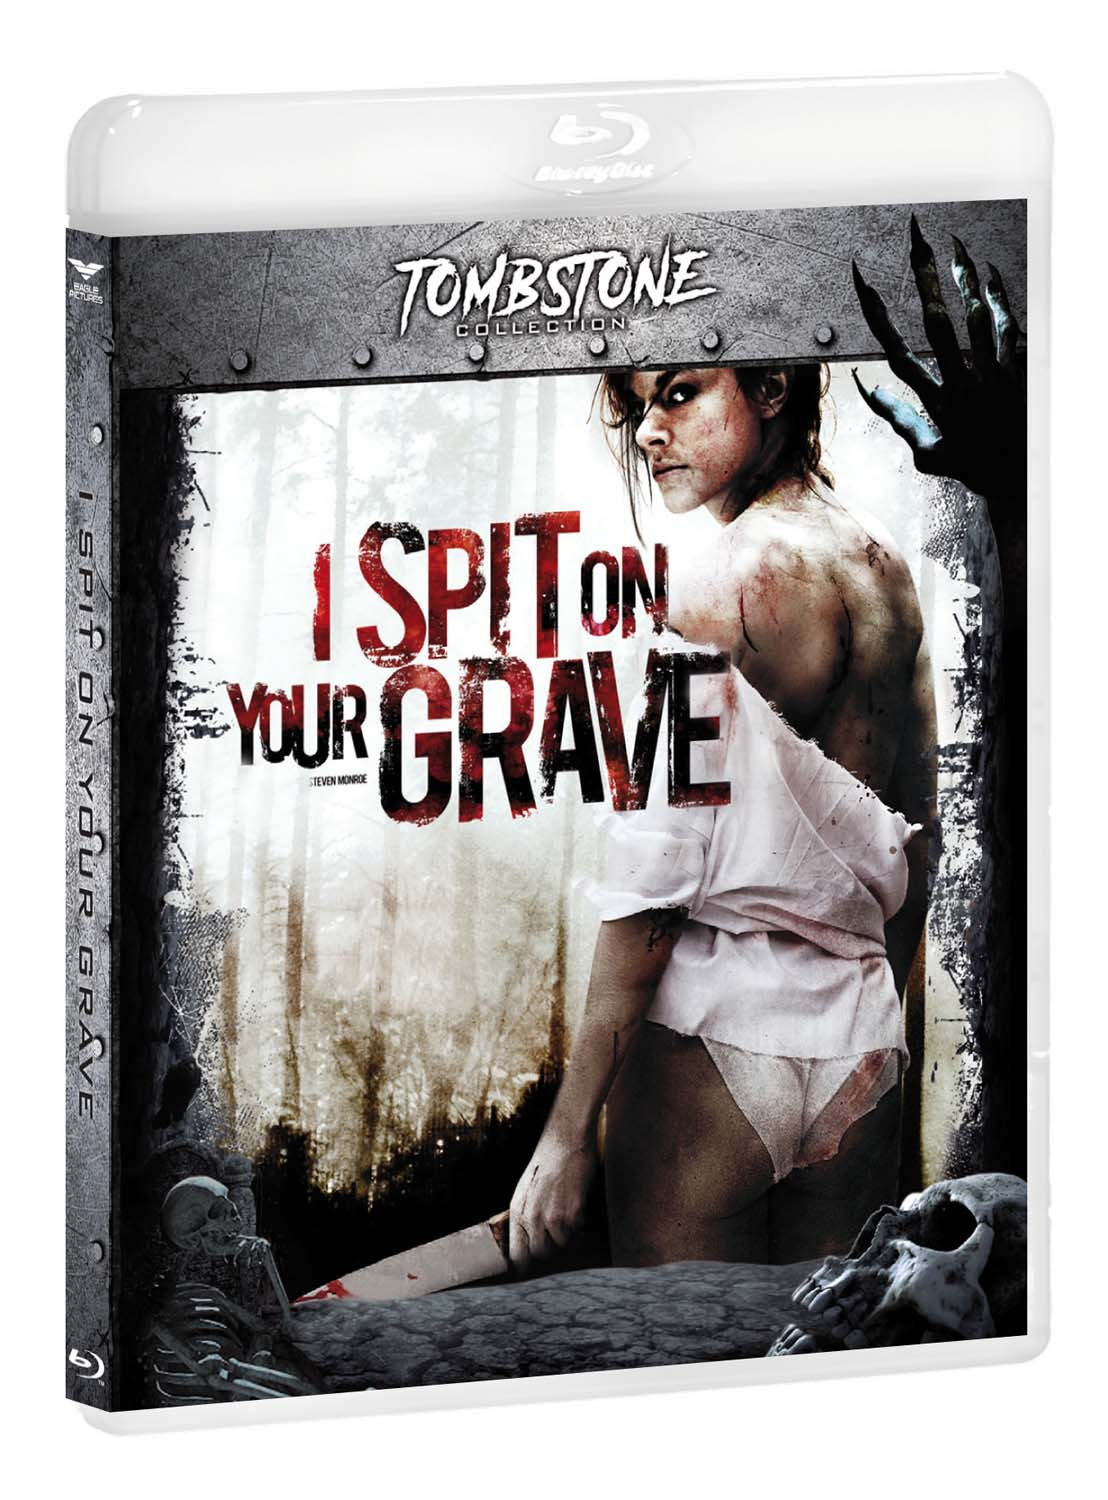 I SPIT ON YOUR GRAVE -RMX (TOMBSTONE) - BLU RAY